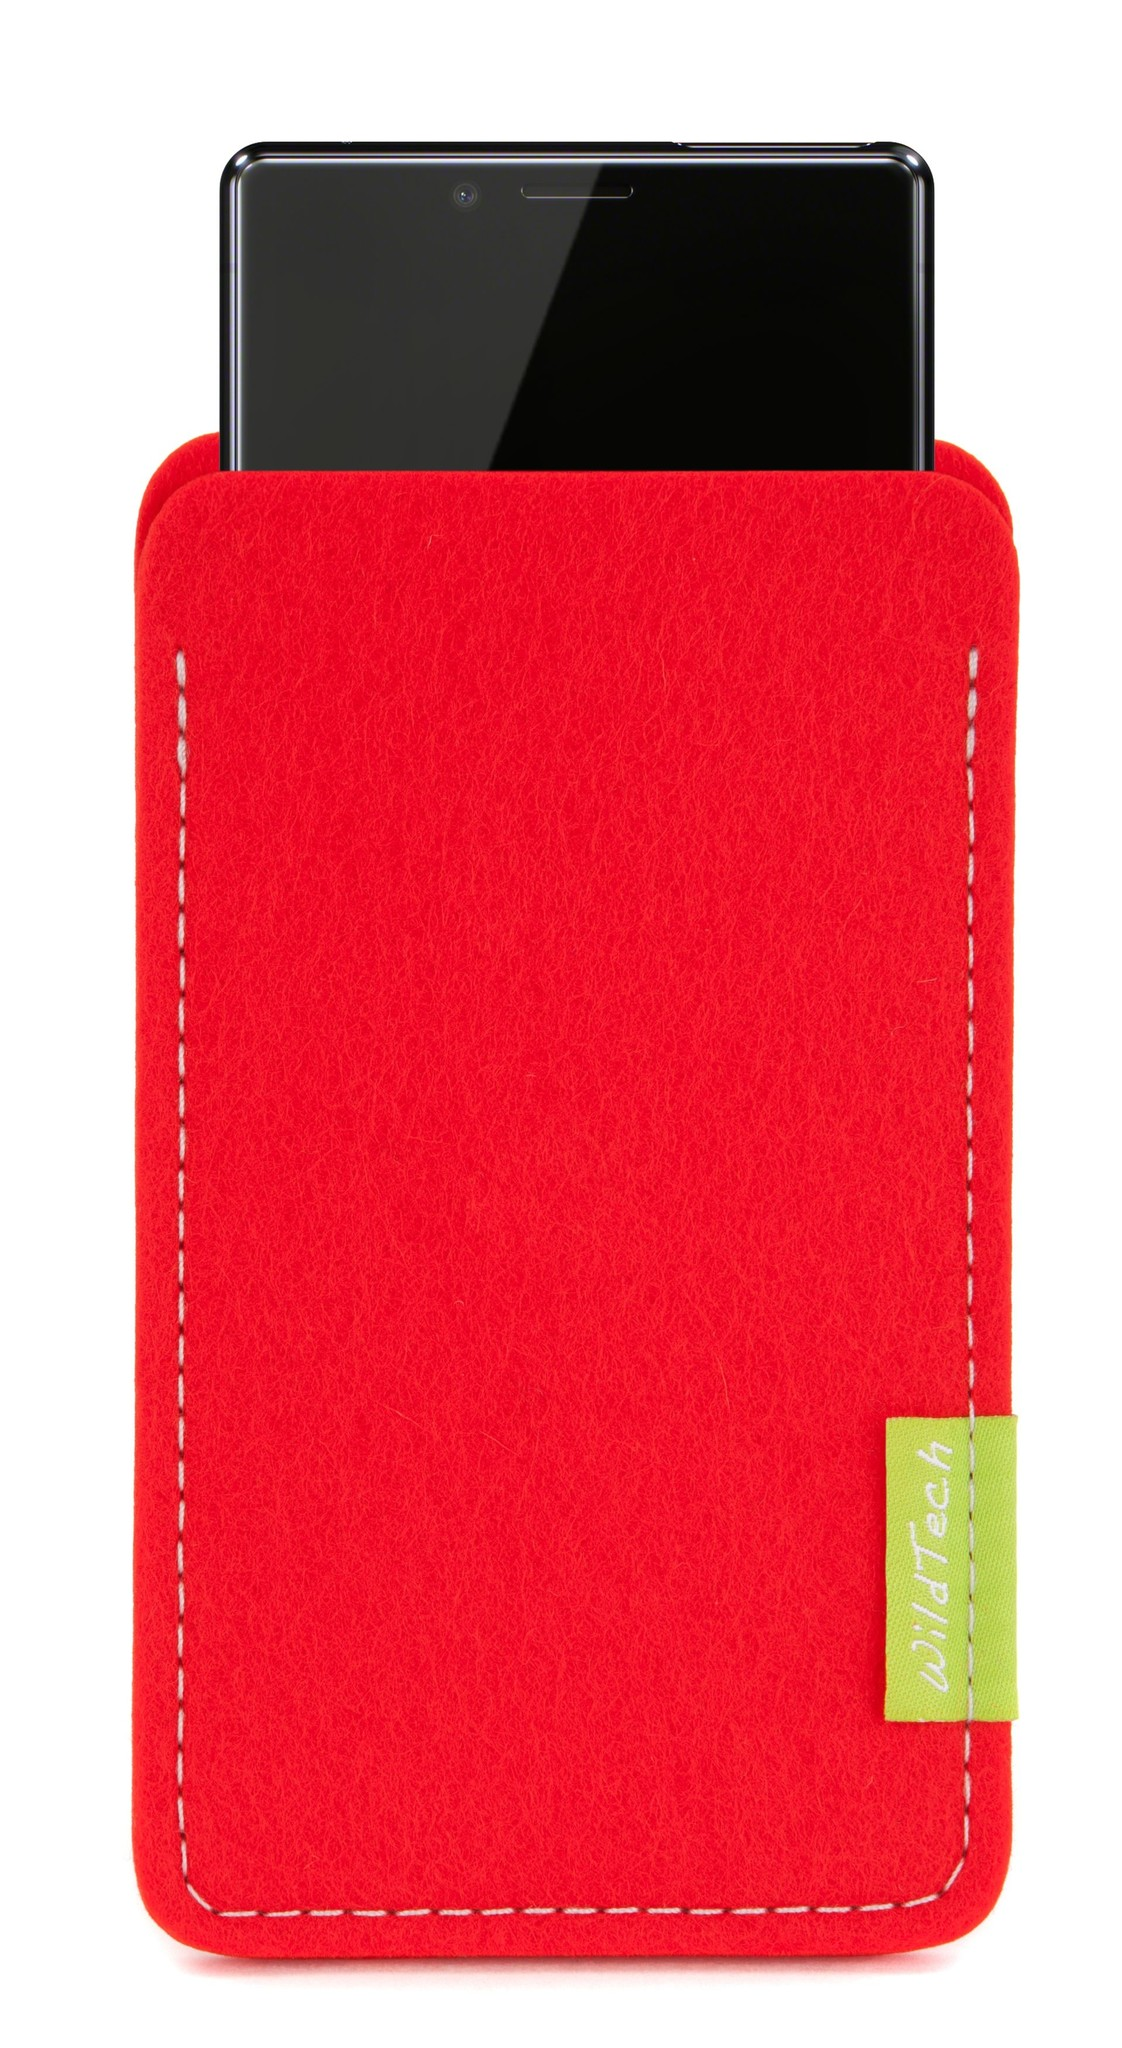 Xperia Sleeve Bright-Red-1